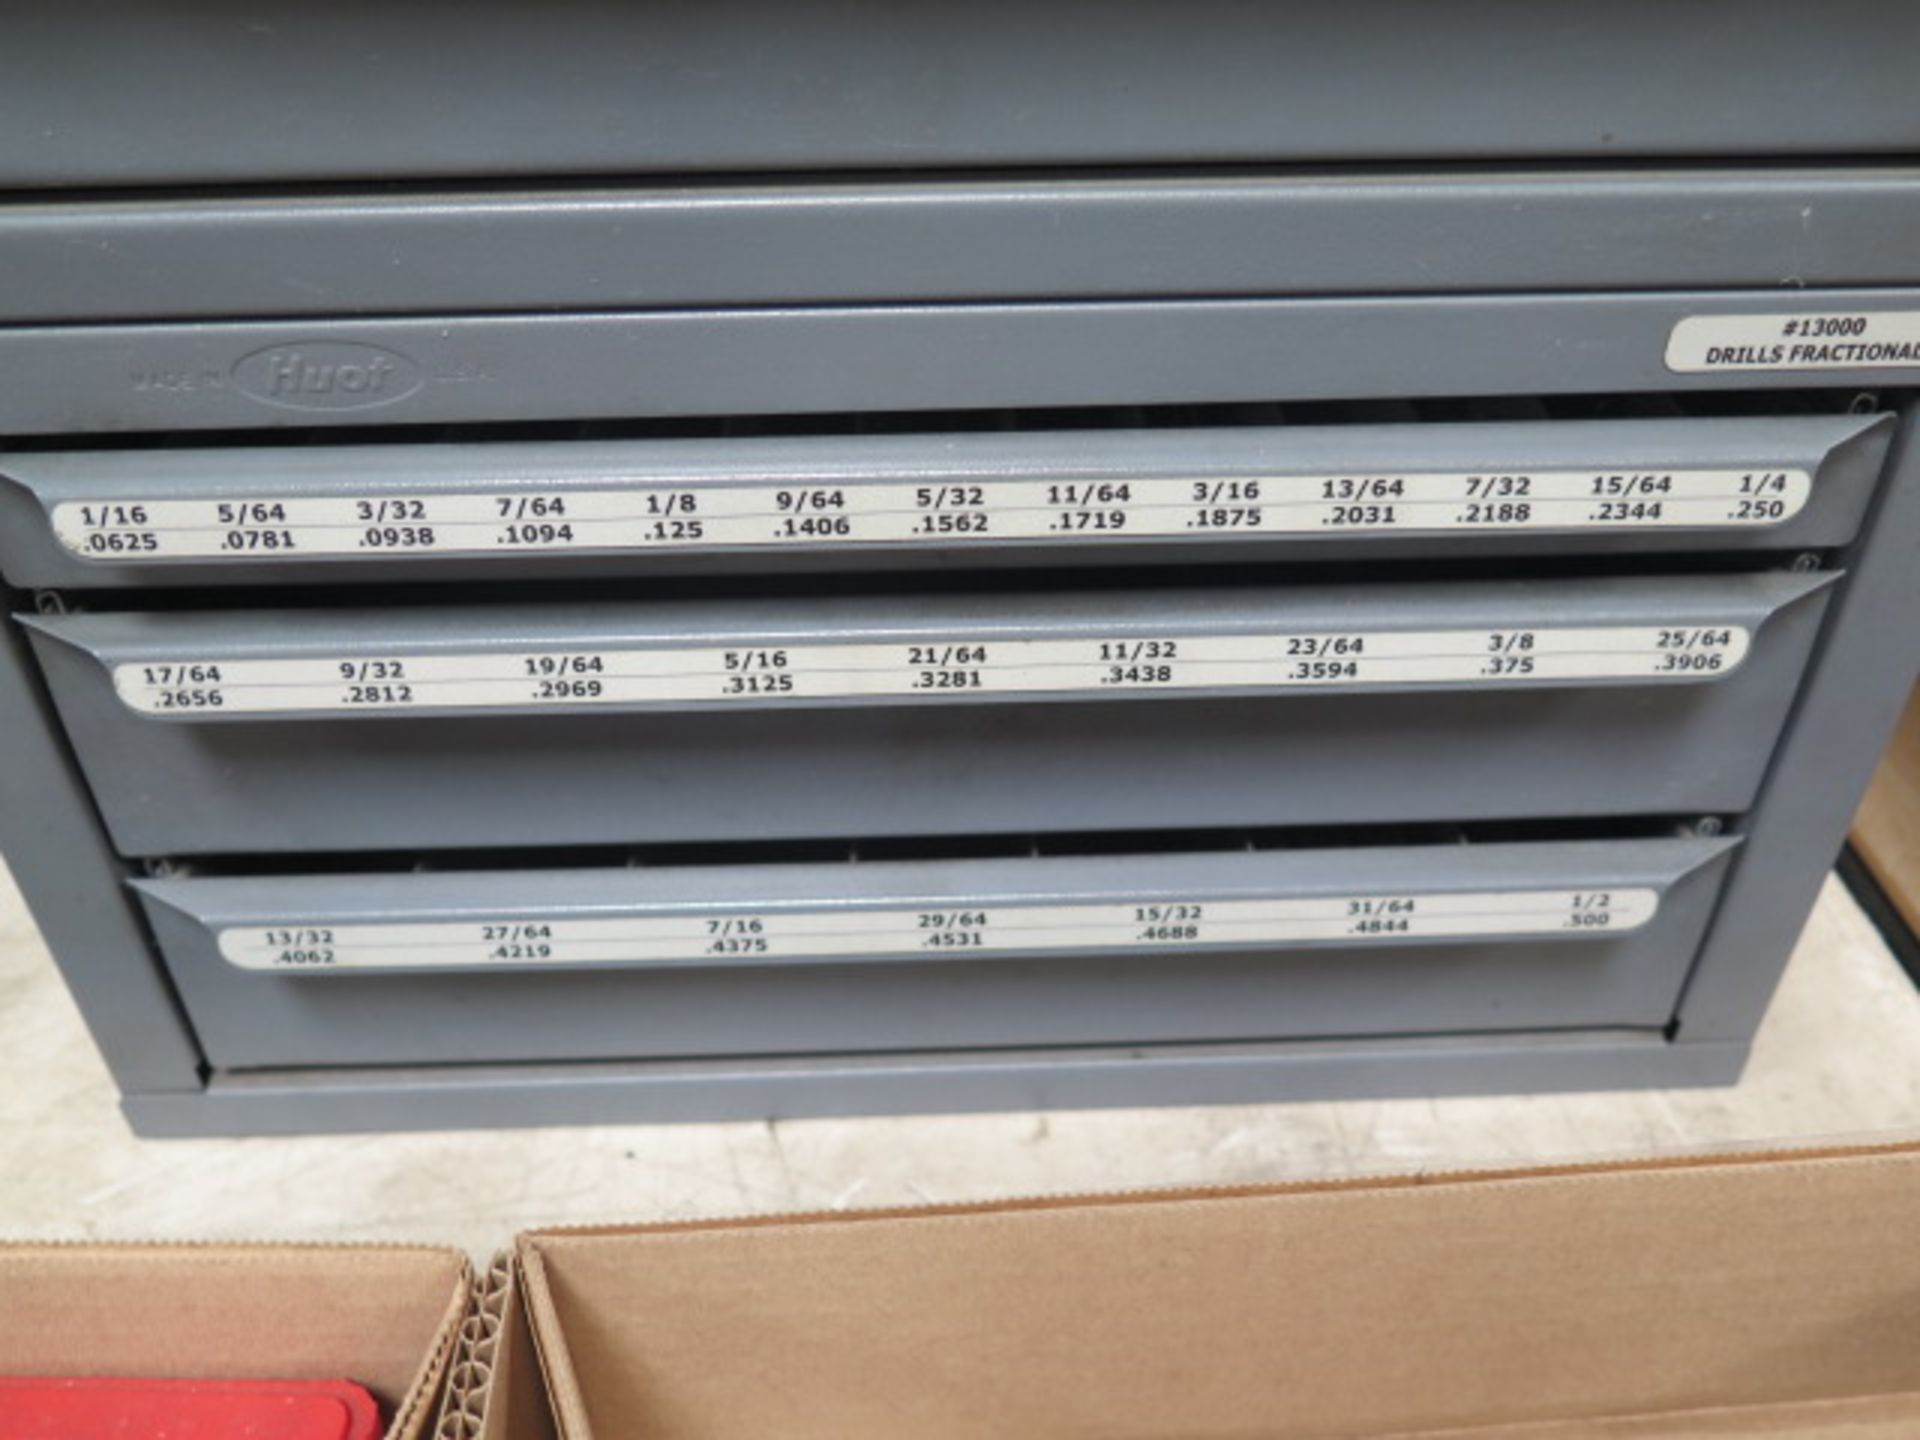 Huot Drill Cabinets (3) w/ Drills (SOLD AS-IS - NO WARRANTY) - Image 4 of 15